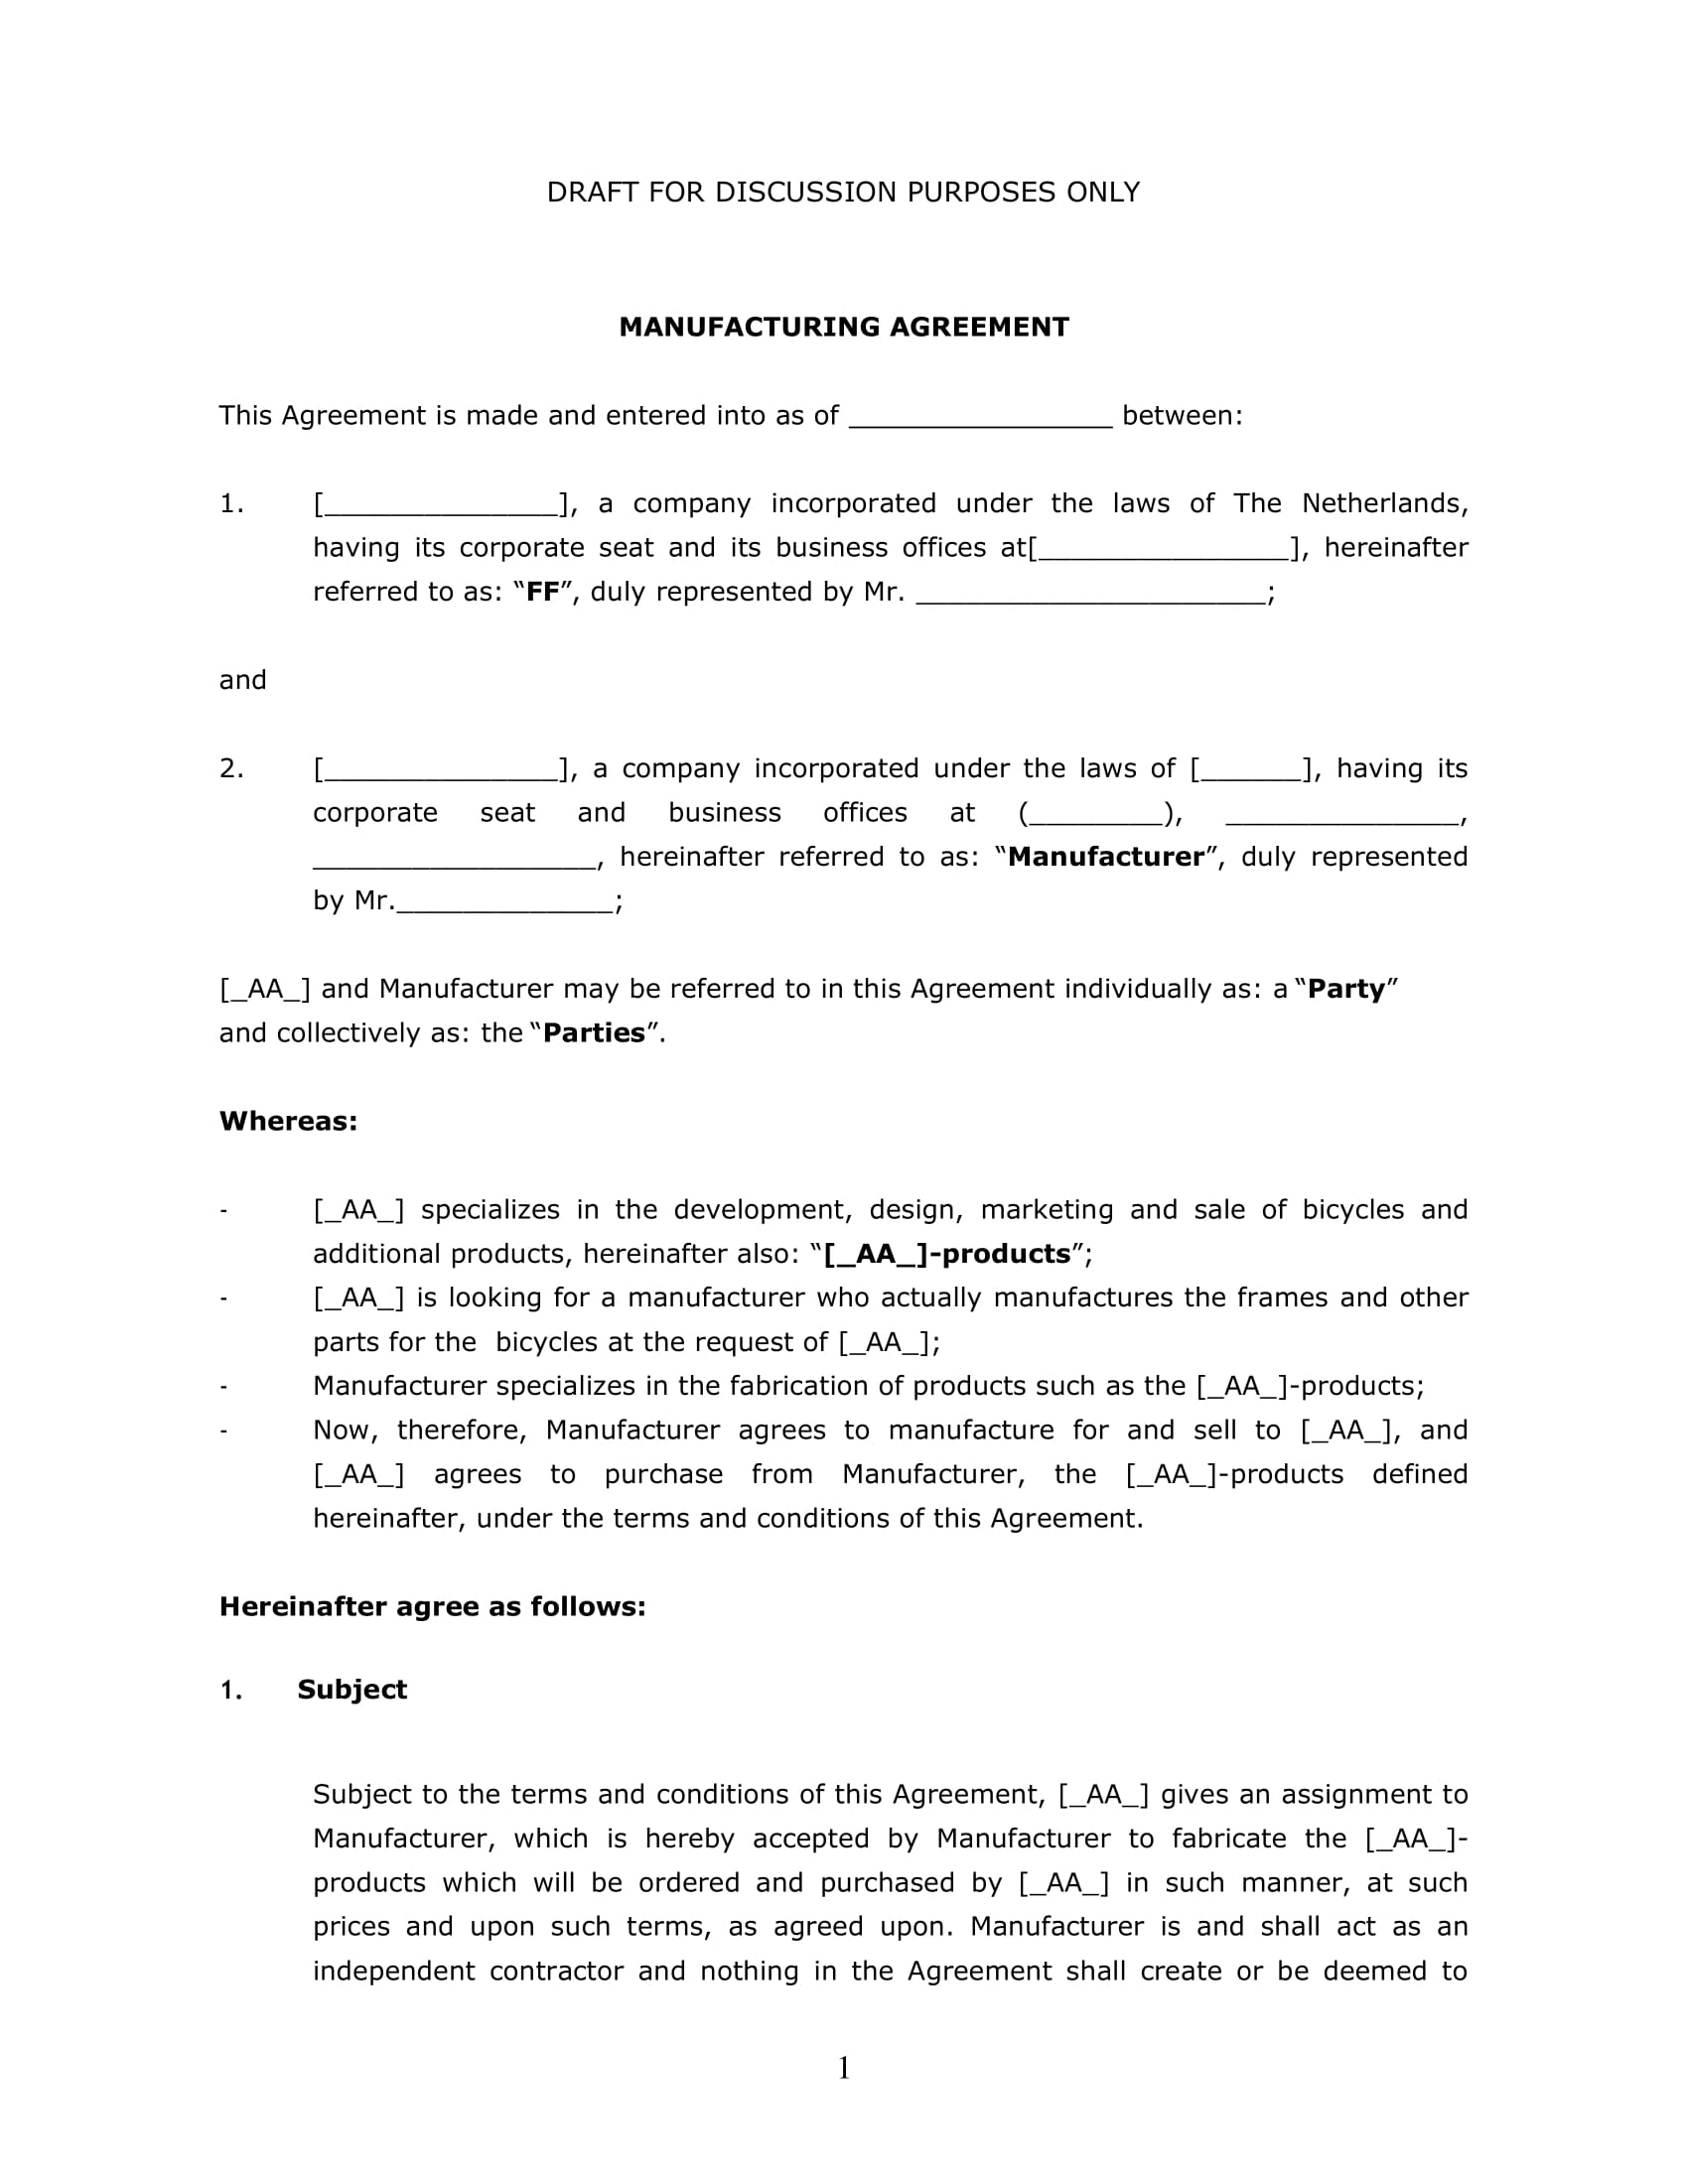 contract manufacturing agreement draft template example 1